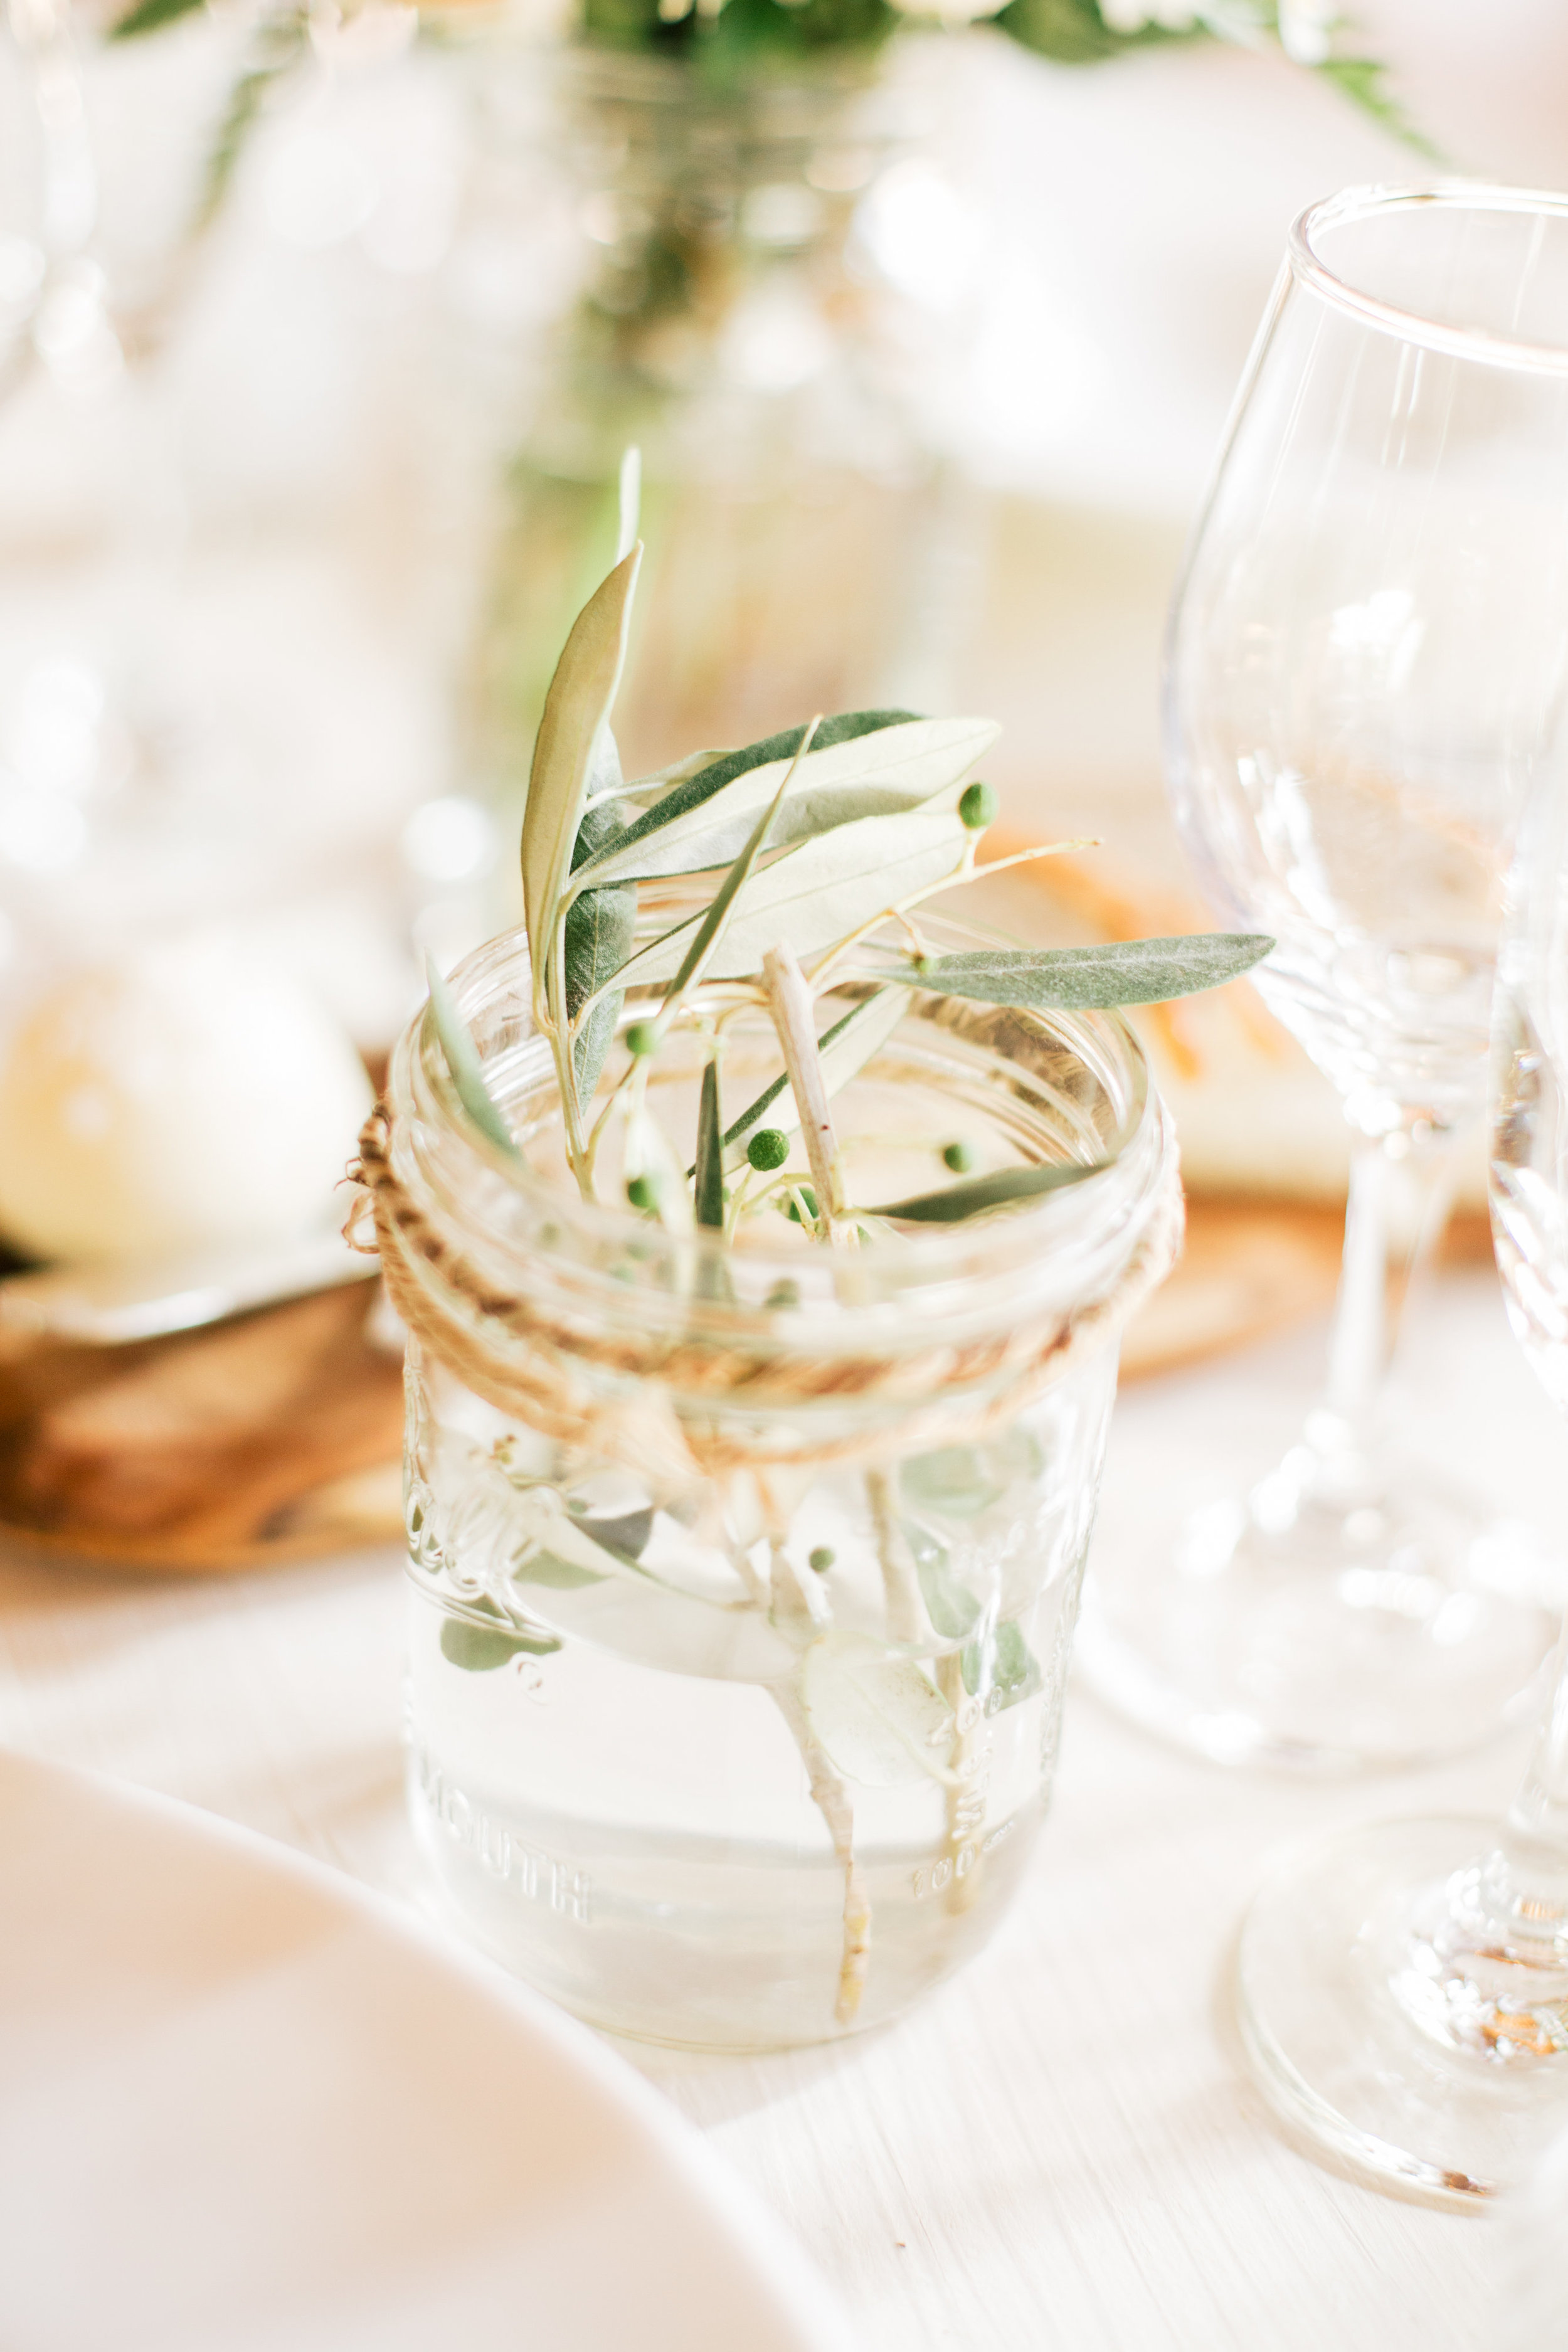 Rustic flower table decor and farm butter